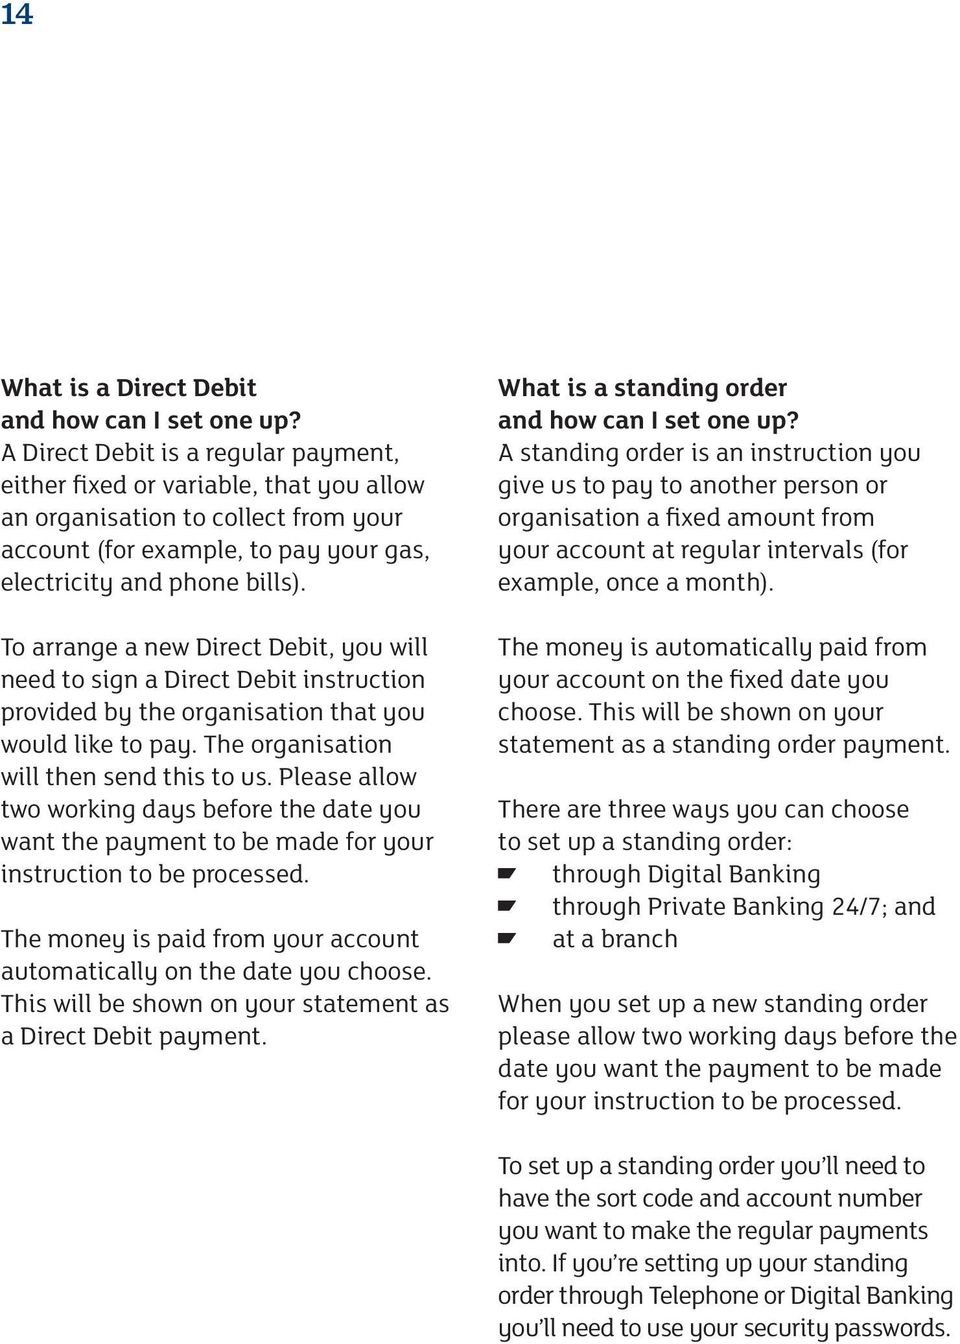 To arrange a new Direct Debit, you will need to sign a Direct Debit instruction provided by the organisation that you would like to pay. The organisation will then send this to us.